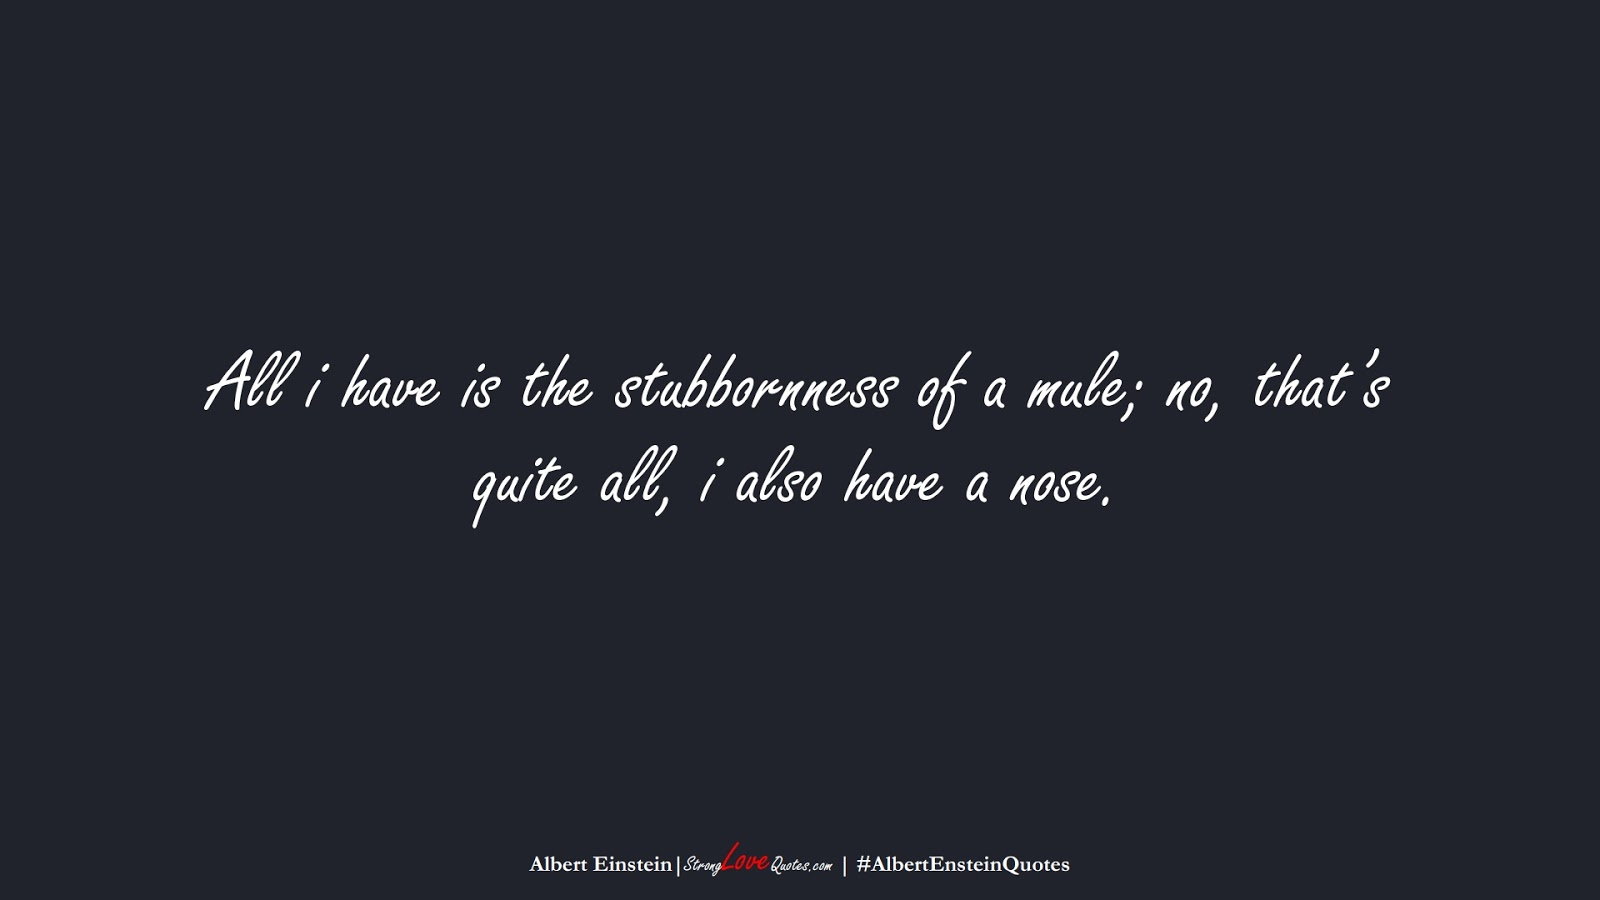 All i have is the stubbornness of a mule; no, that's quite all, i also have a nose. (Albert Einstein);  #AlbertEnsteinQuotes